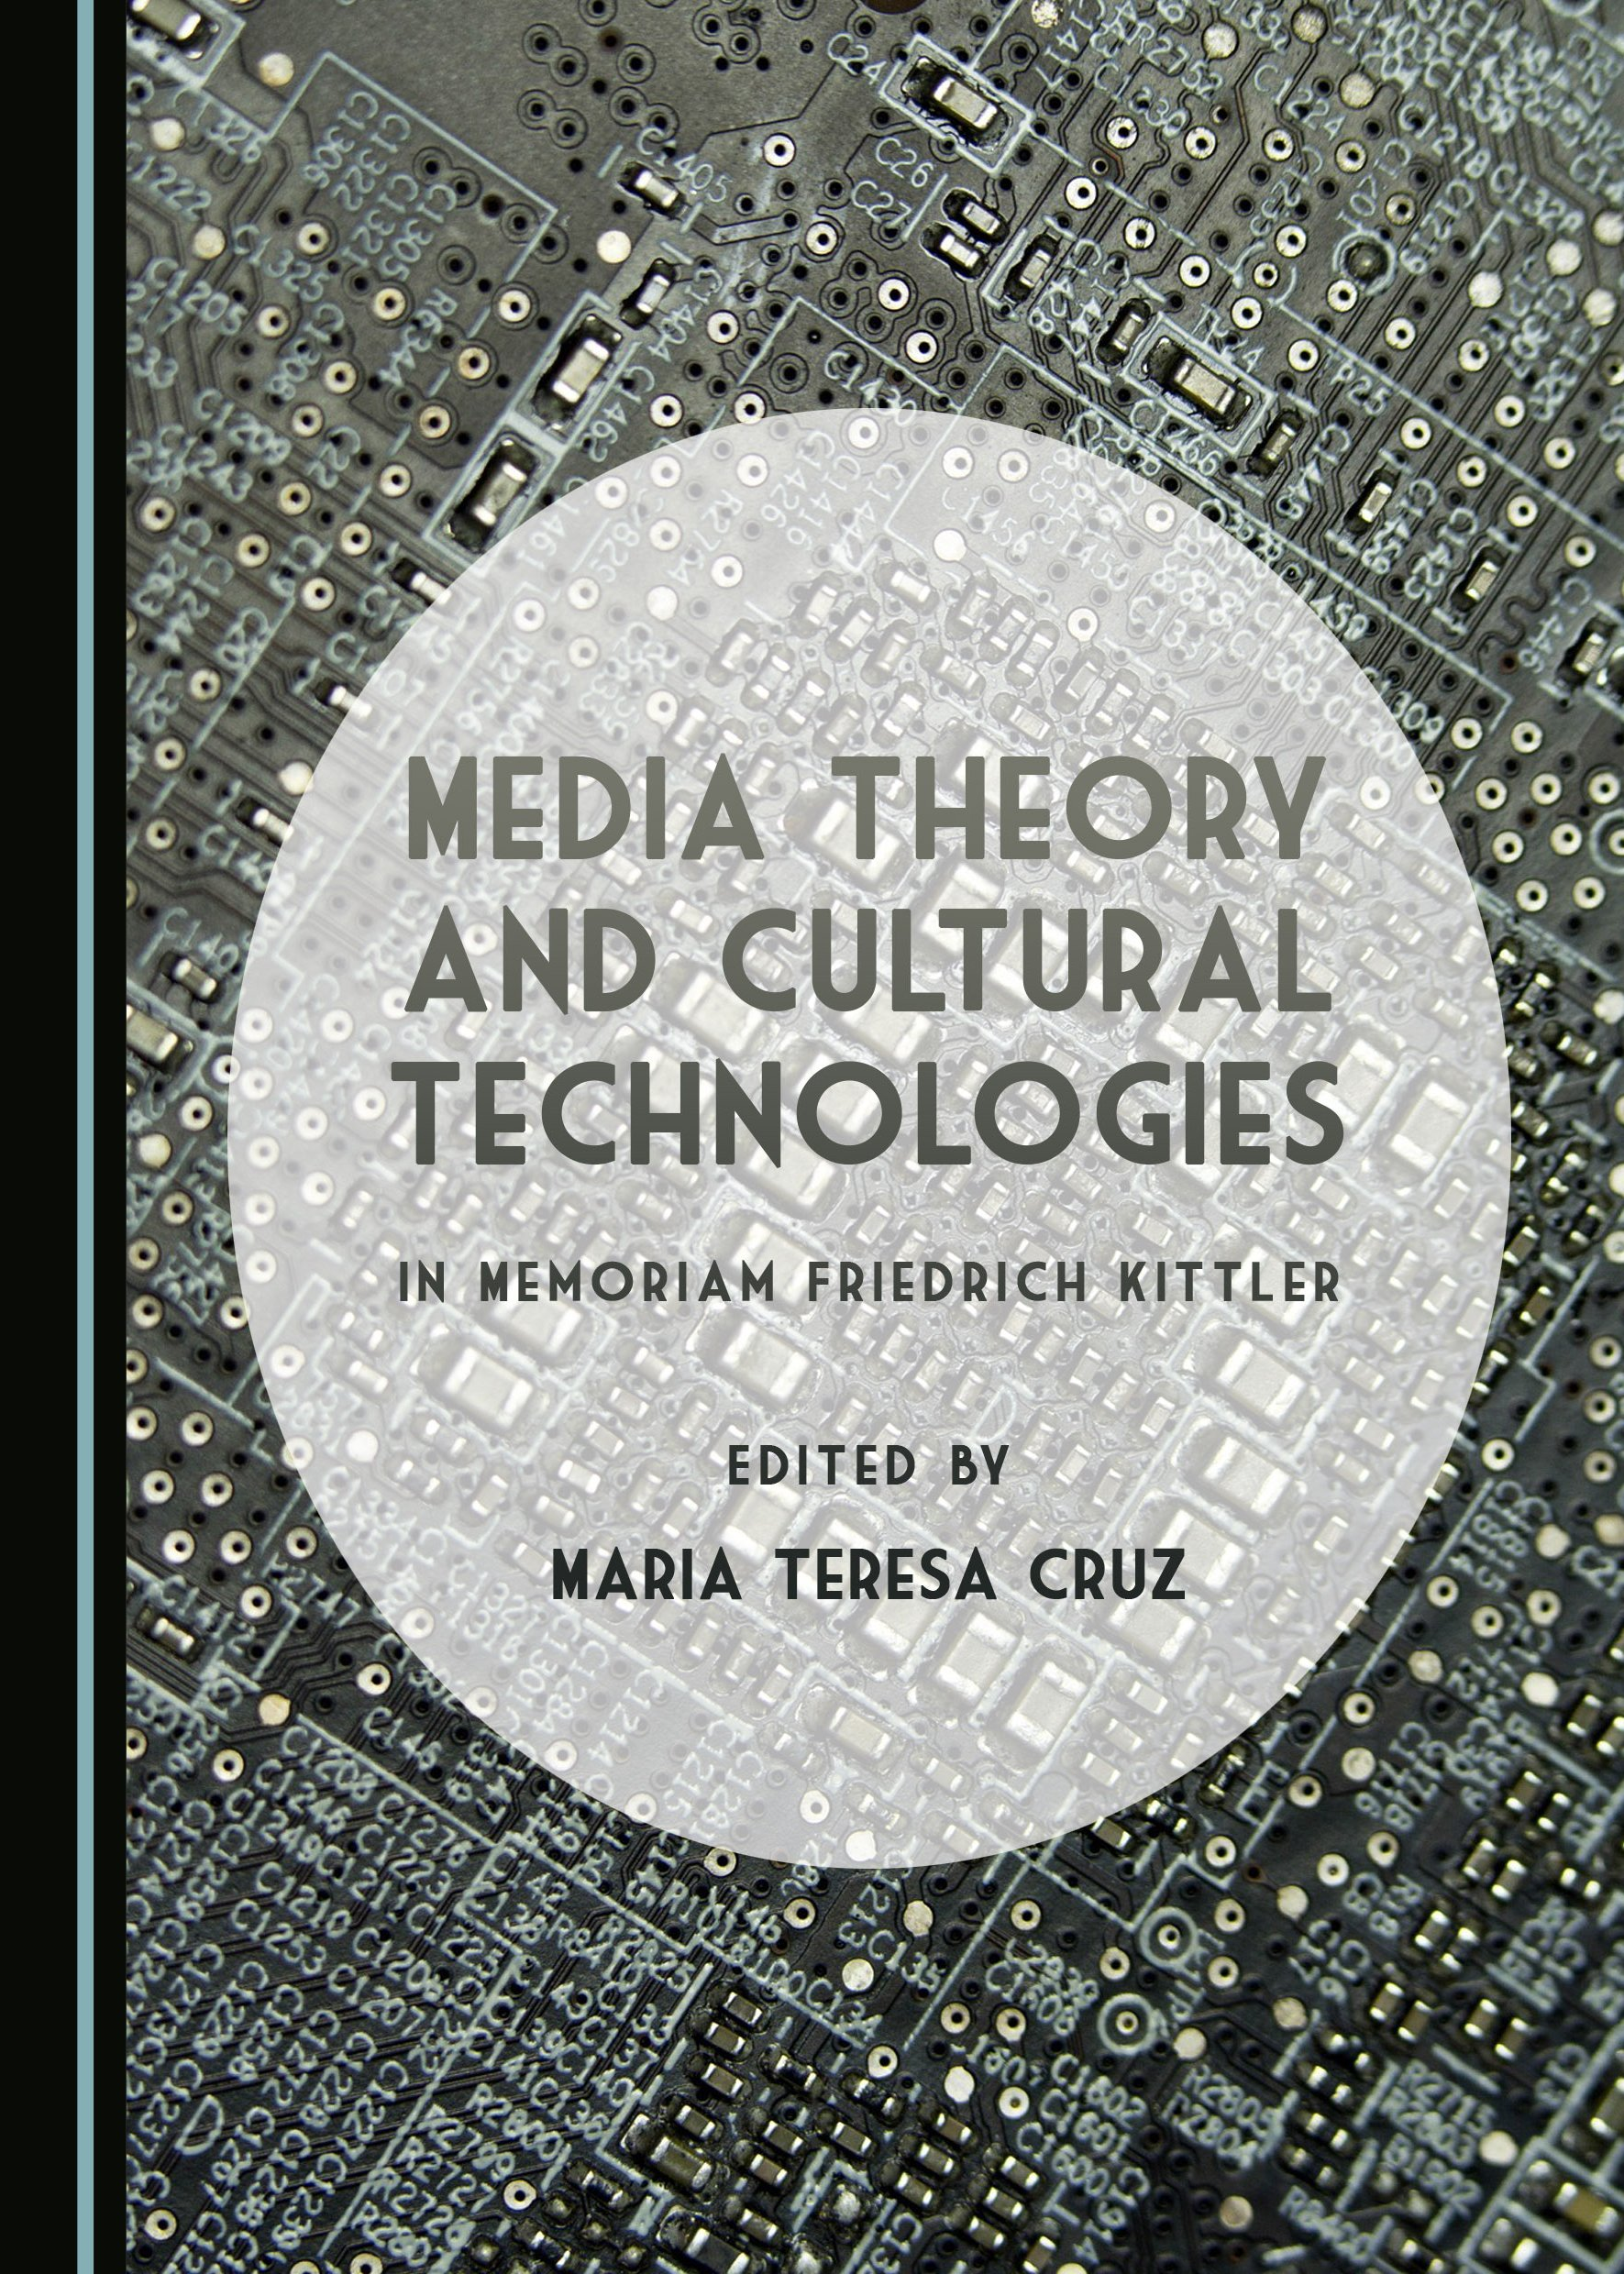 Media Theory and Cultural Technologies: In Memoriam Friedrich Kittler